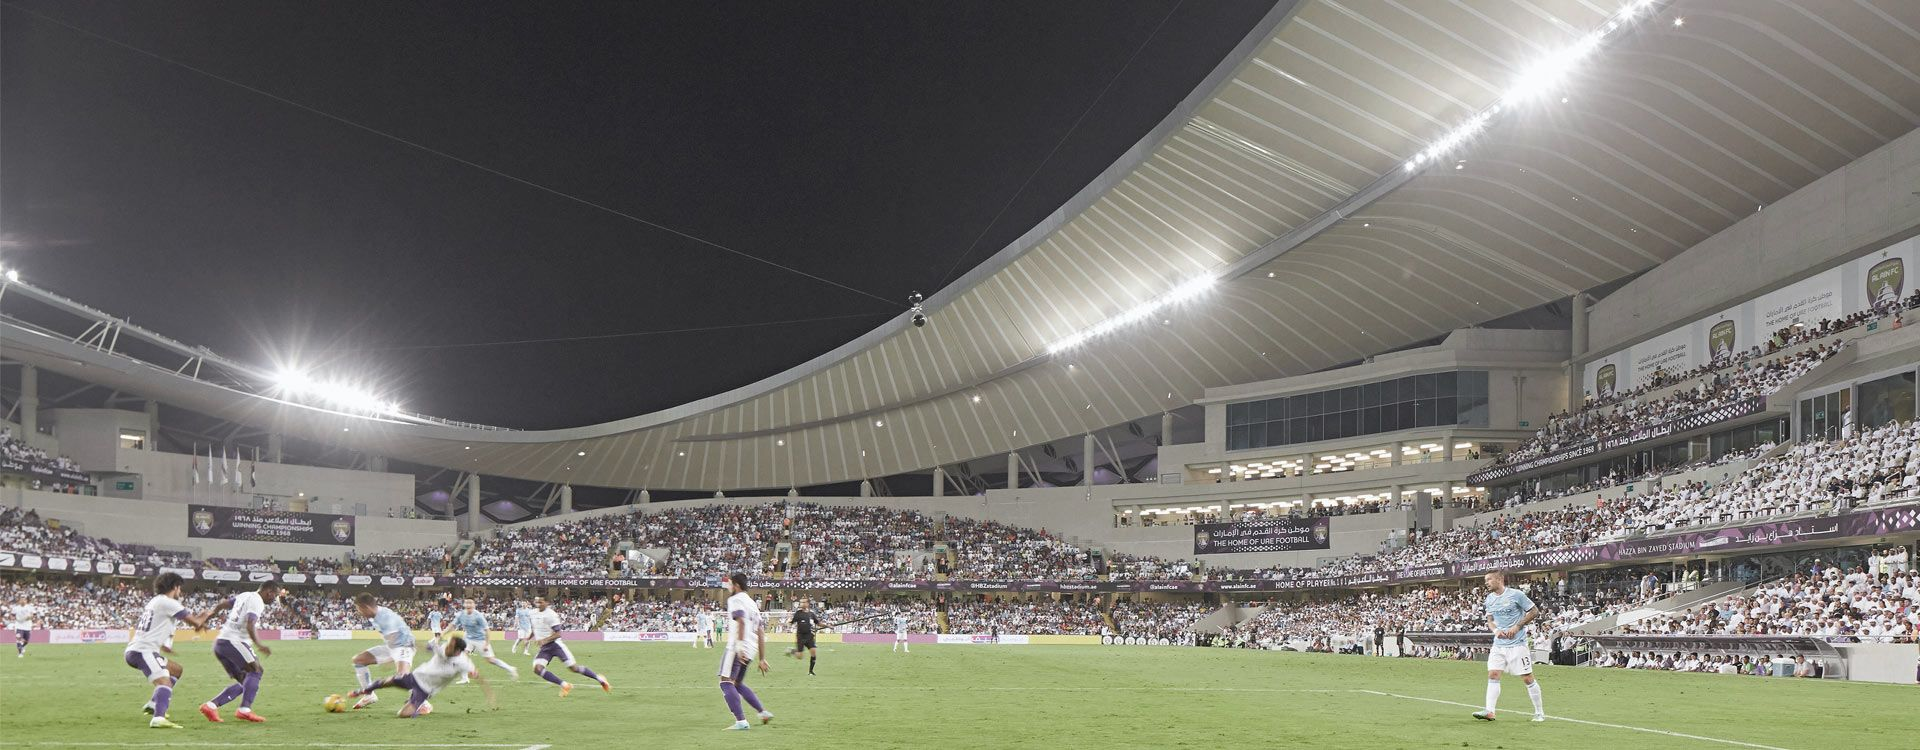 bnr-Hazza-Bin-Zayed-Stadium_Sports-and-Stadia